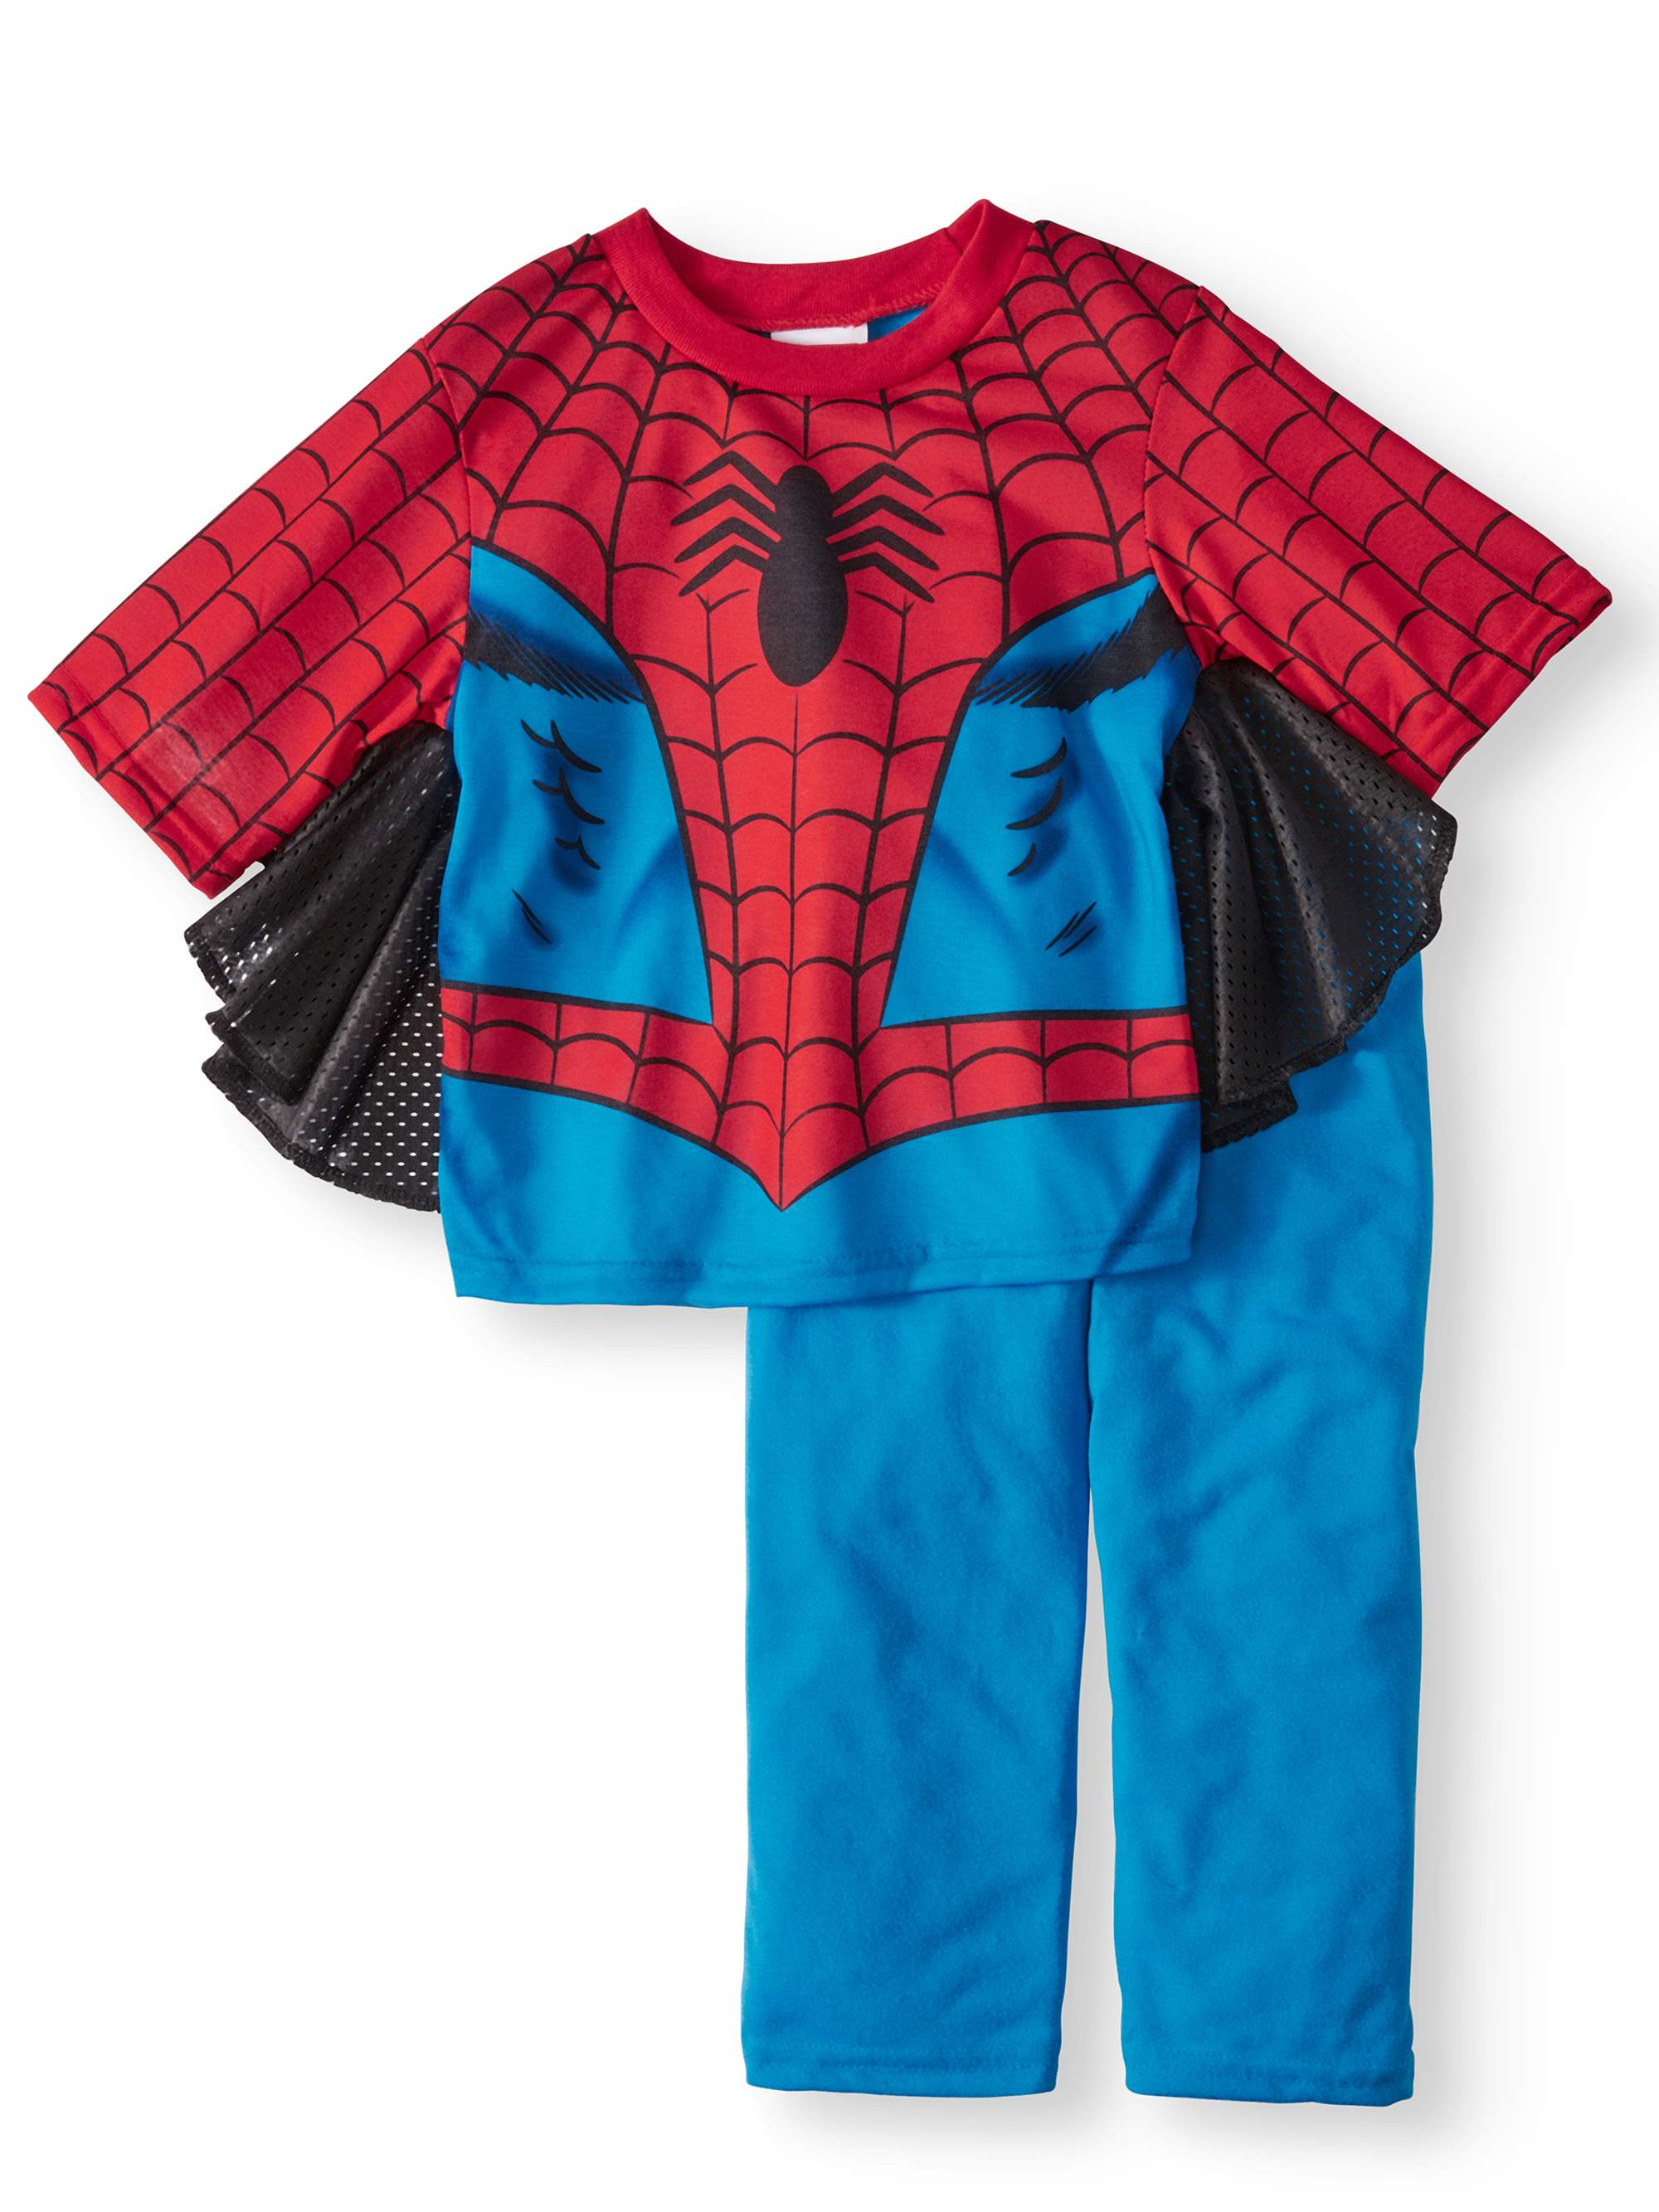 Short Sleeve Costume Play Pajamas, 2-piece Set (Toddler Boys)